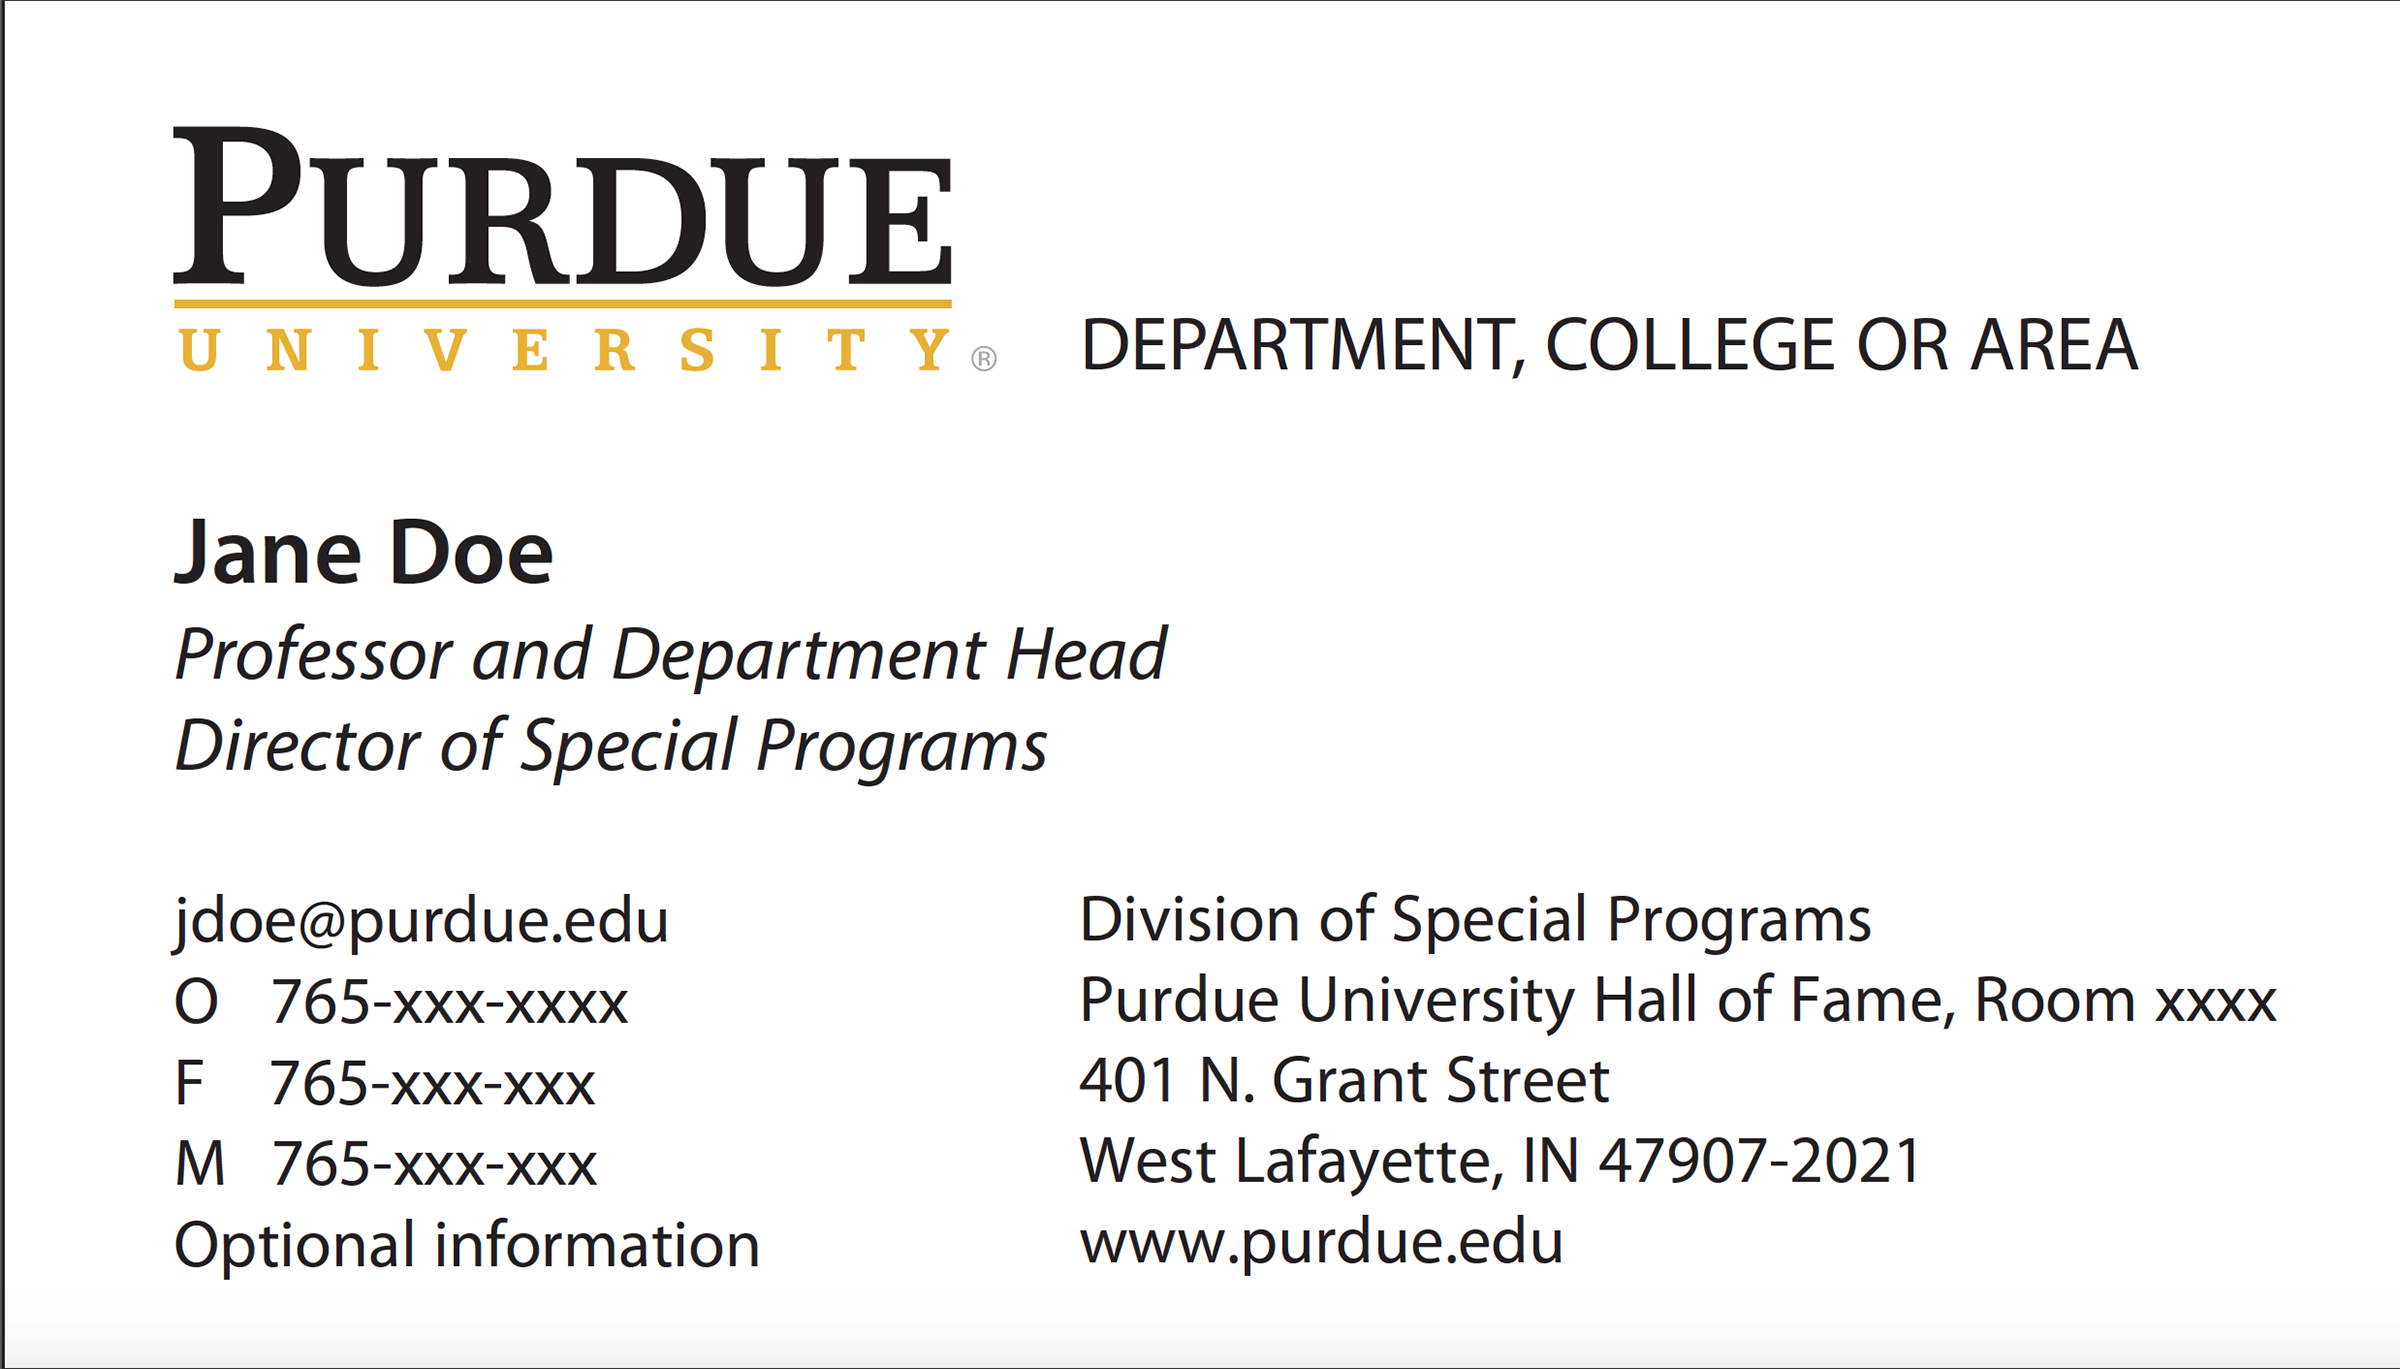 New business card template now online - Purdue University